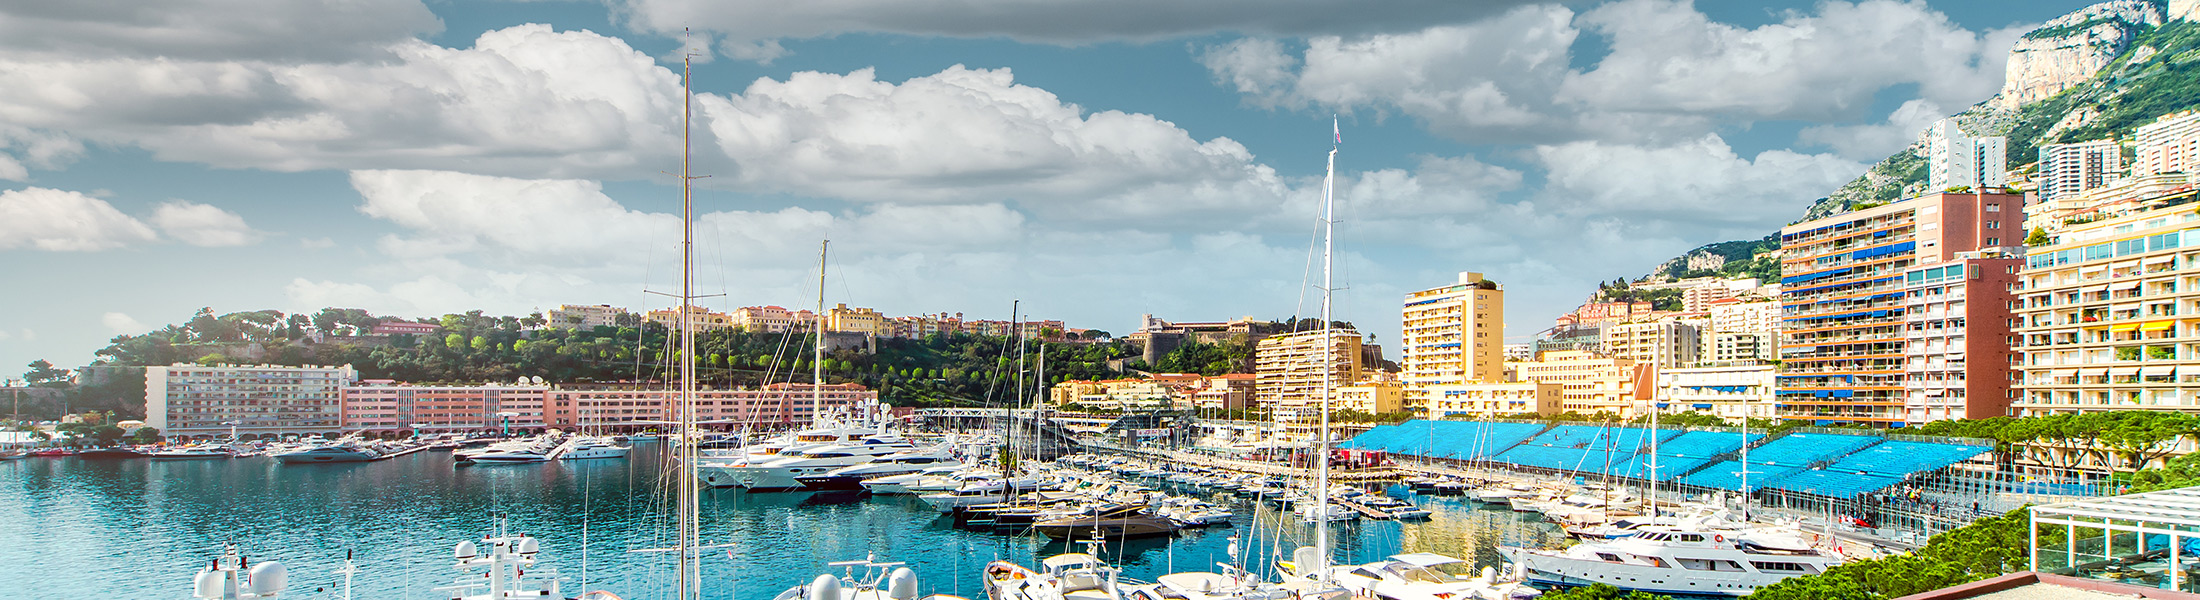 View of the Monaco Marina from Tabac during the Monaco F1 Grand Prix